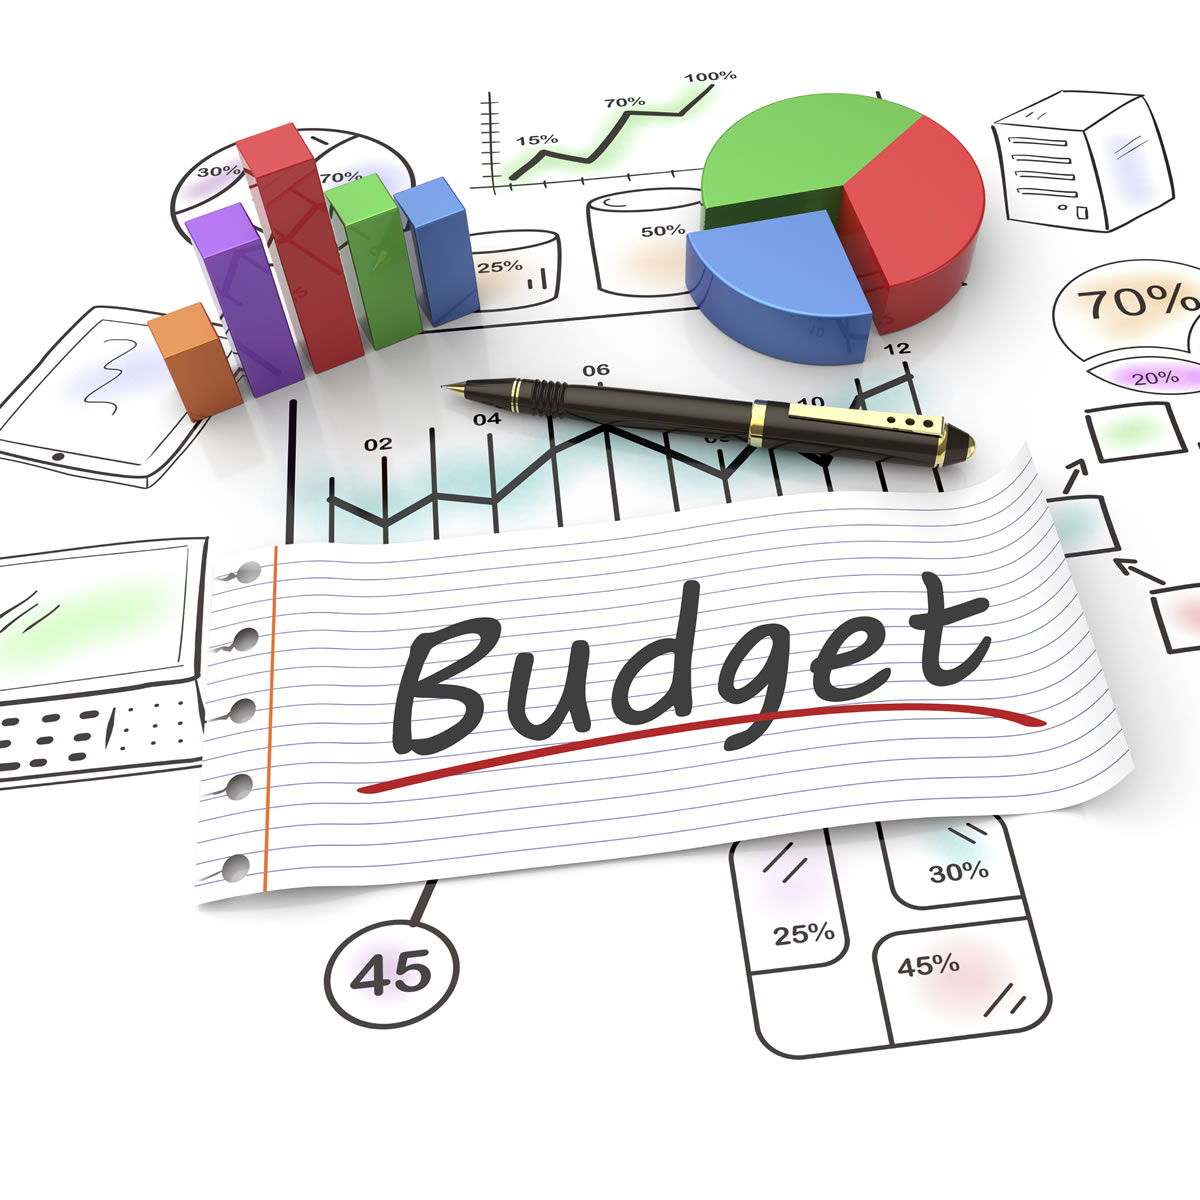 https://fiscalresponsibility.ng/wp-content/uploads/2021/03/fiscal10.jpg